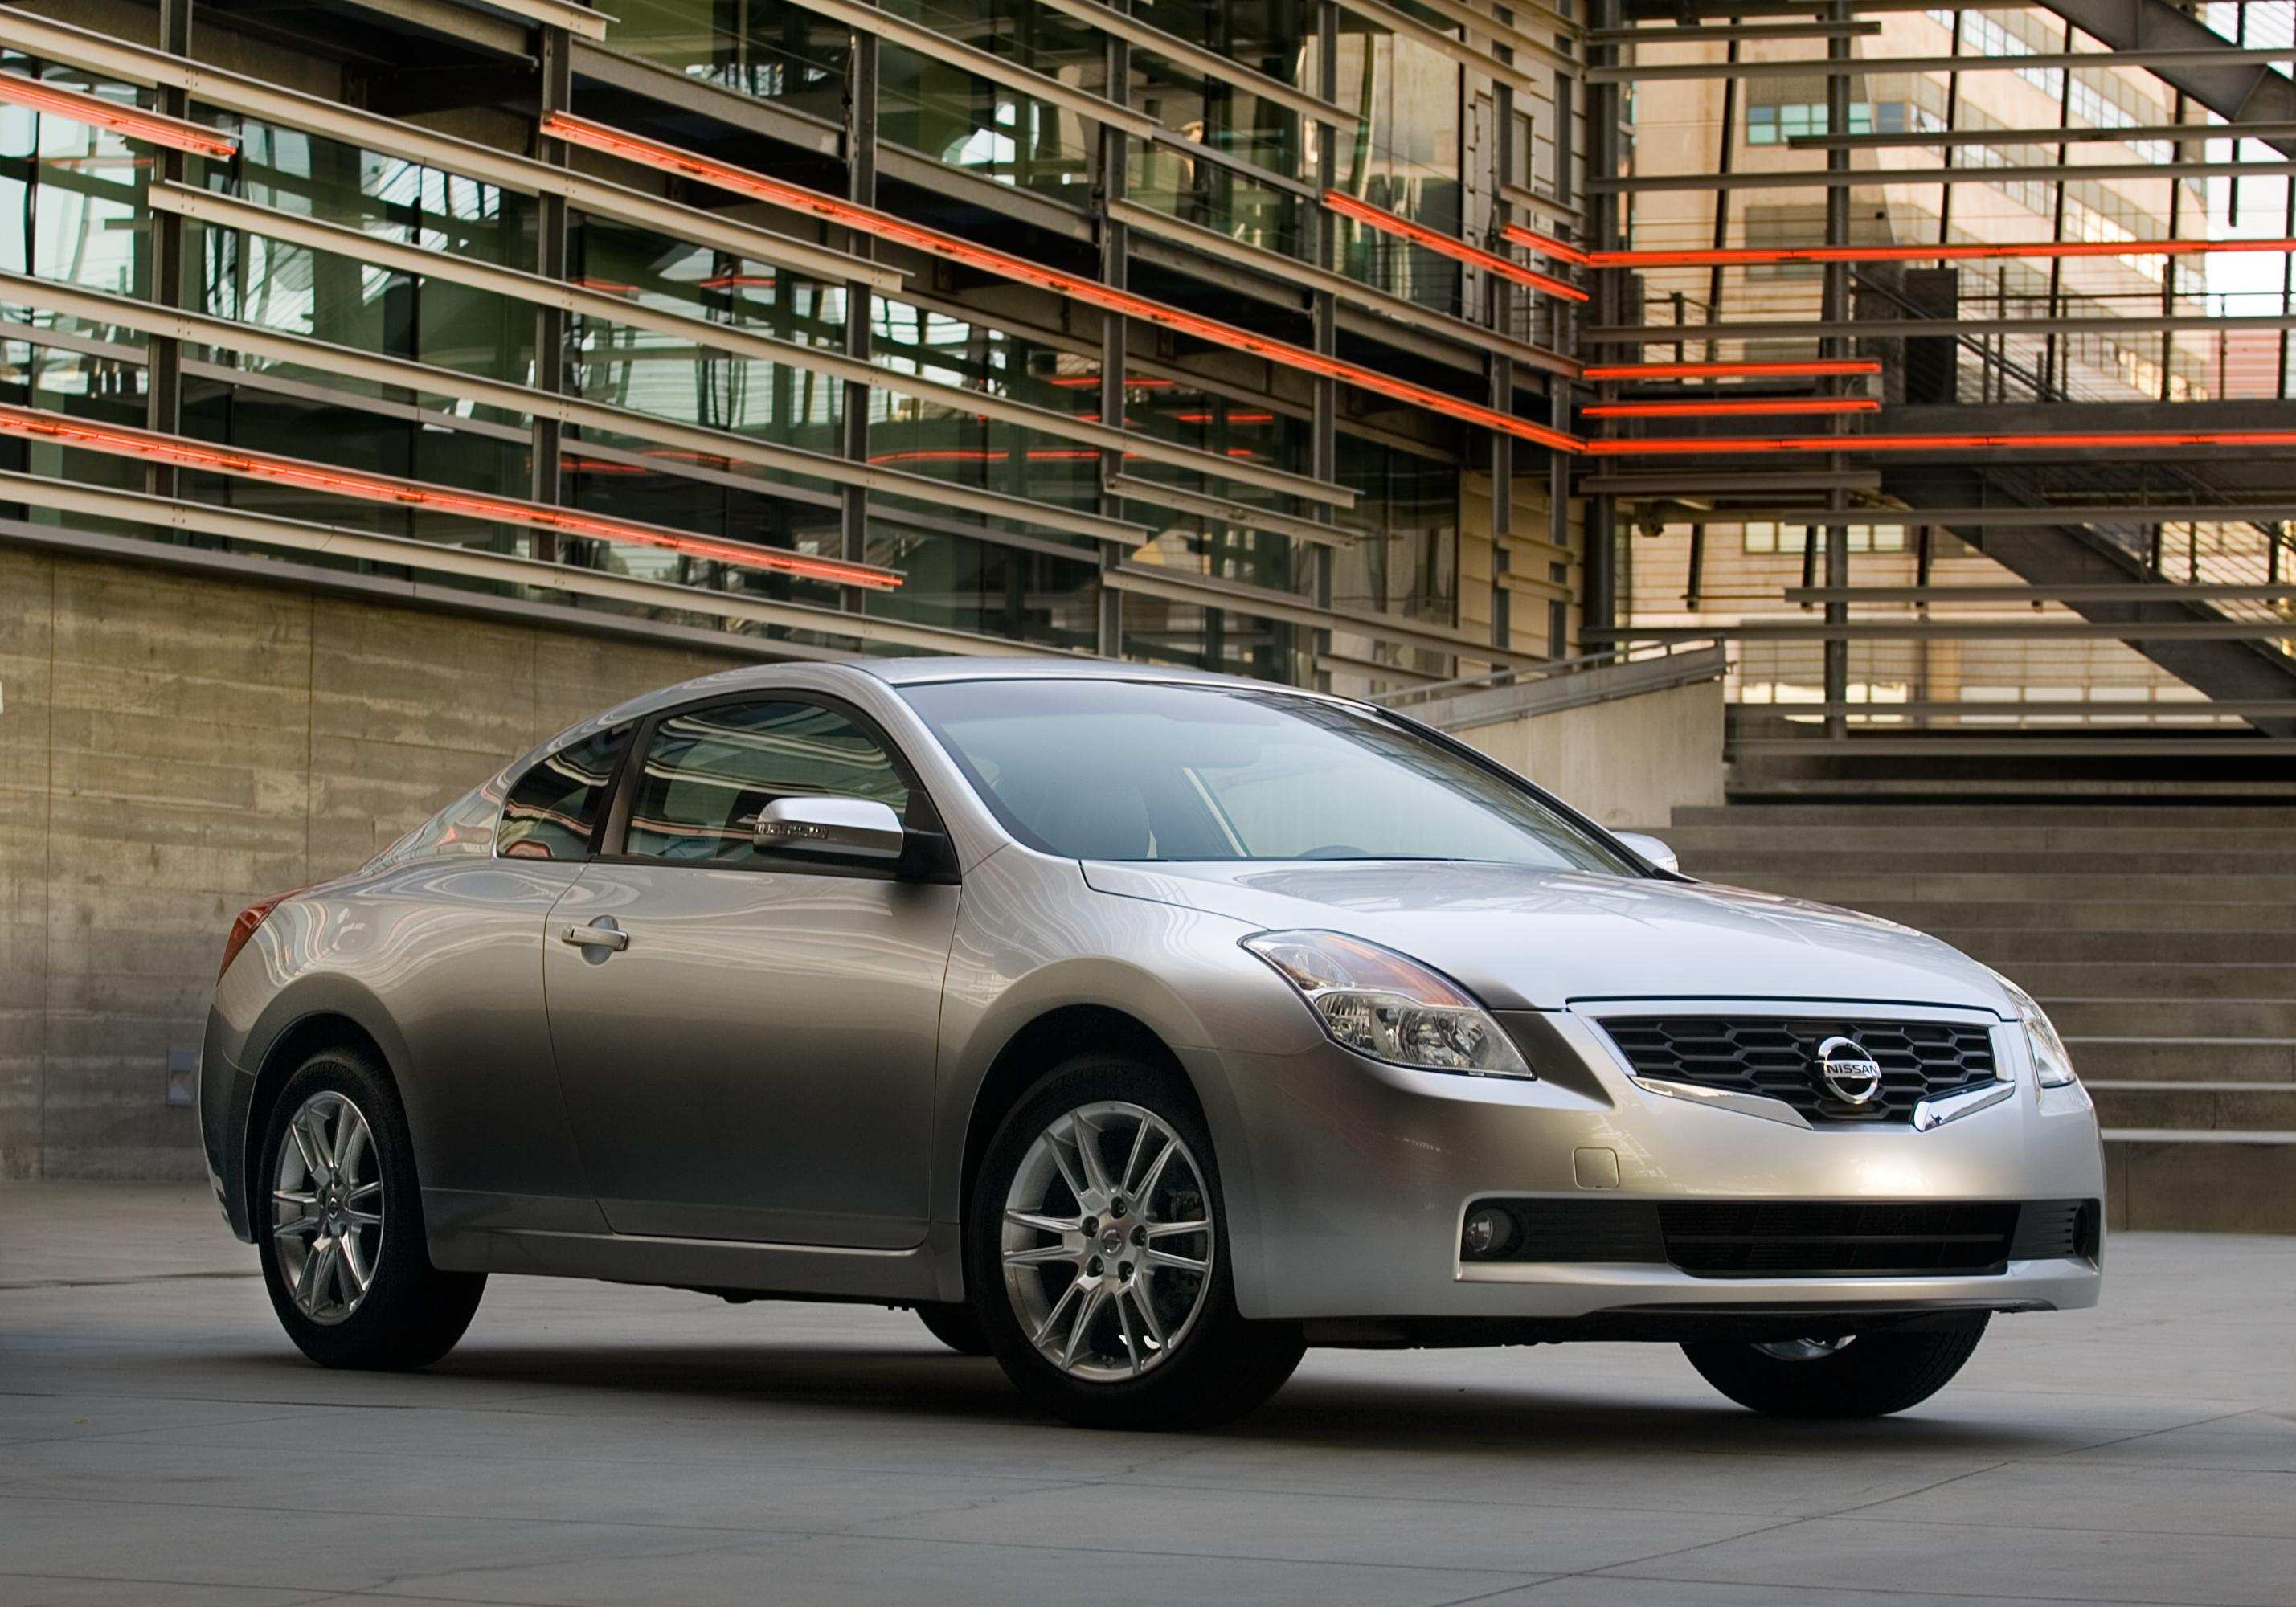 71 Best Review Nissan Altima Coupe 2008 Price and Review with Nissan Altima Coupe 2008